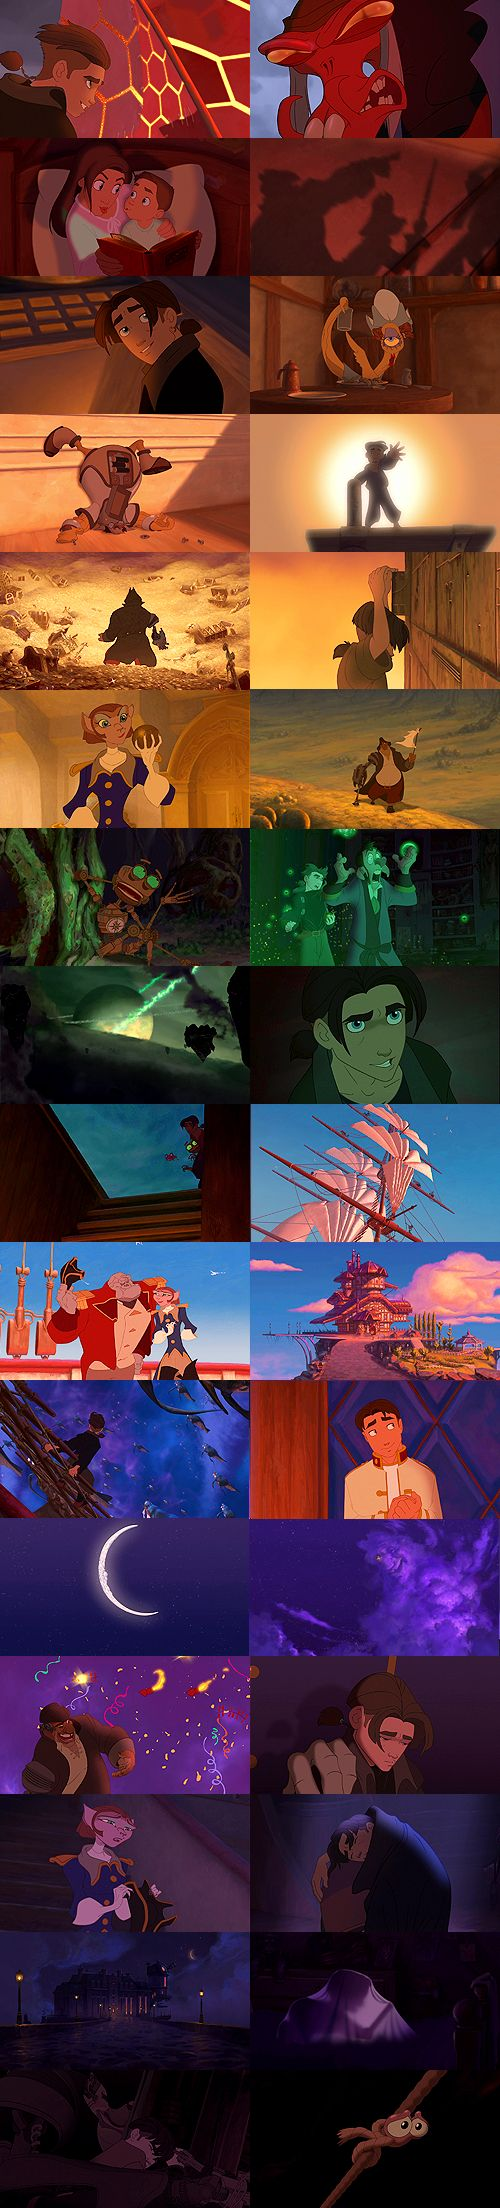 Treasure Planet. Phenomenal animation, great characters, and a moving story make this imaginative and visually stunning retelling of Robert Louis Stevenson's classic novel a true Disney gem!